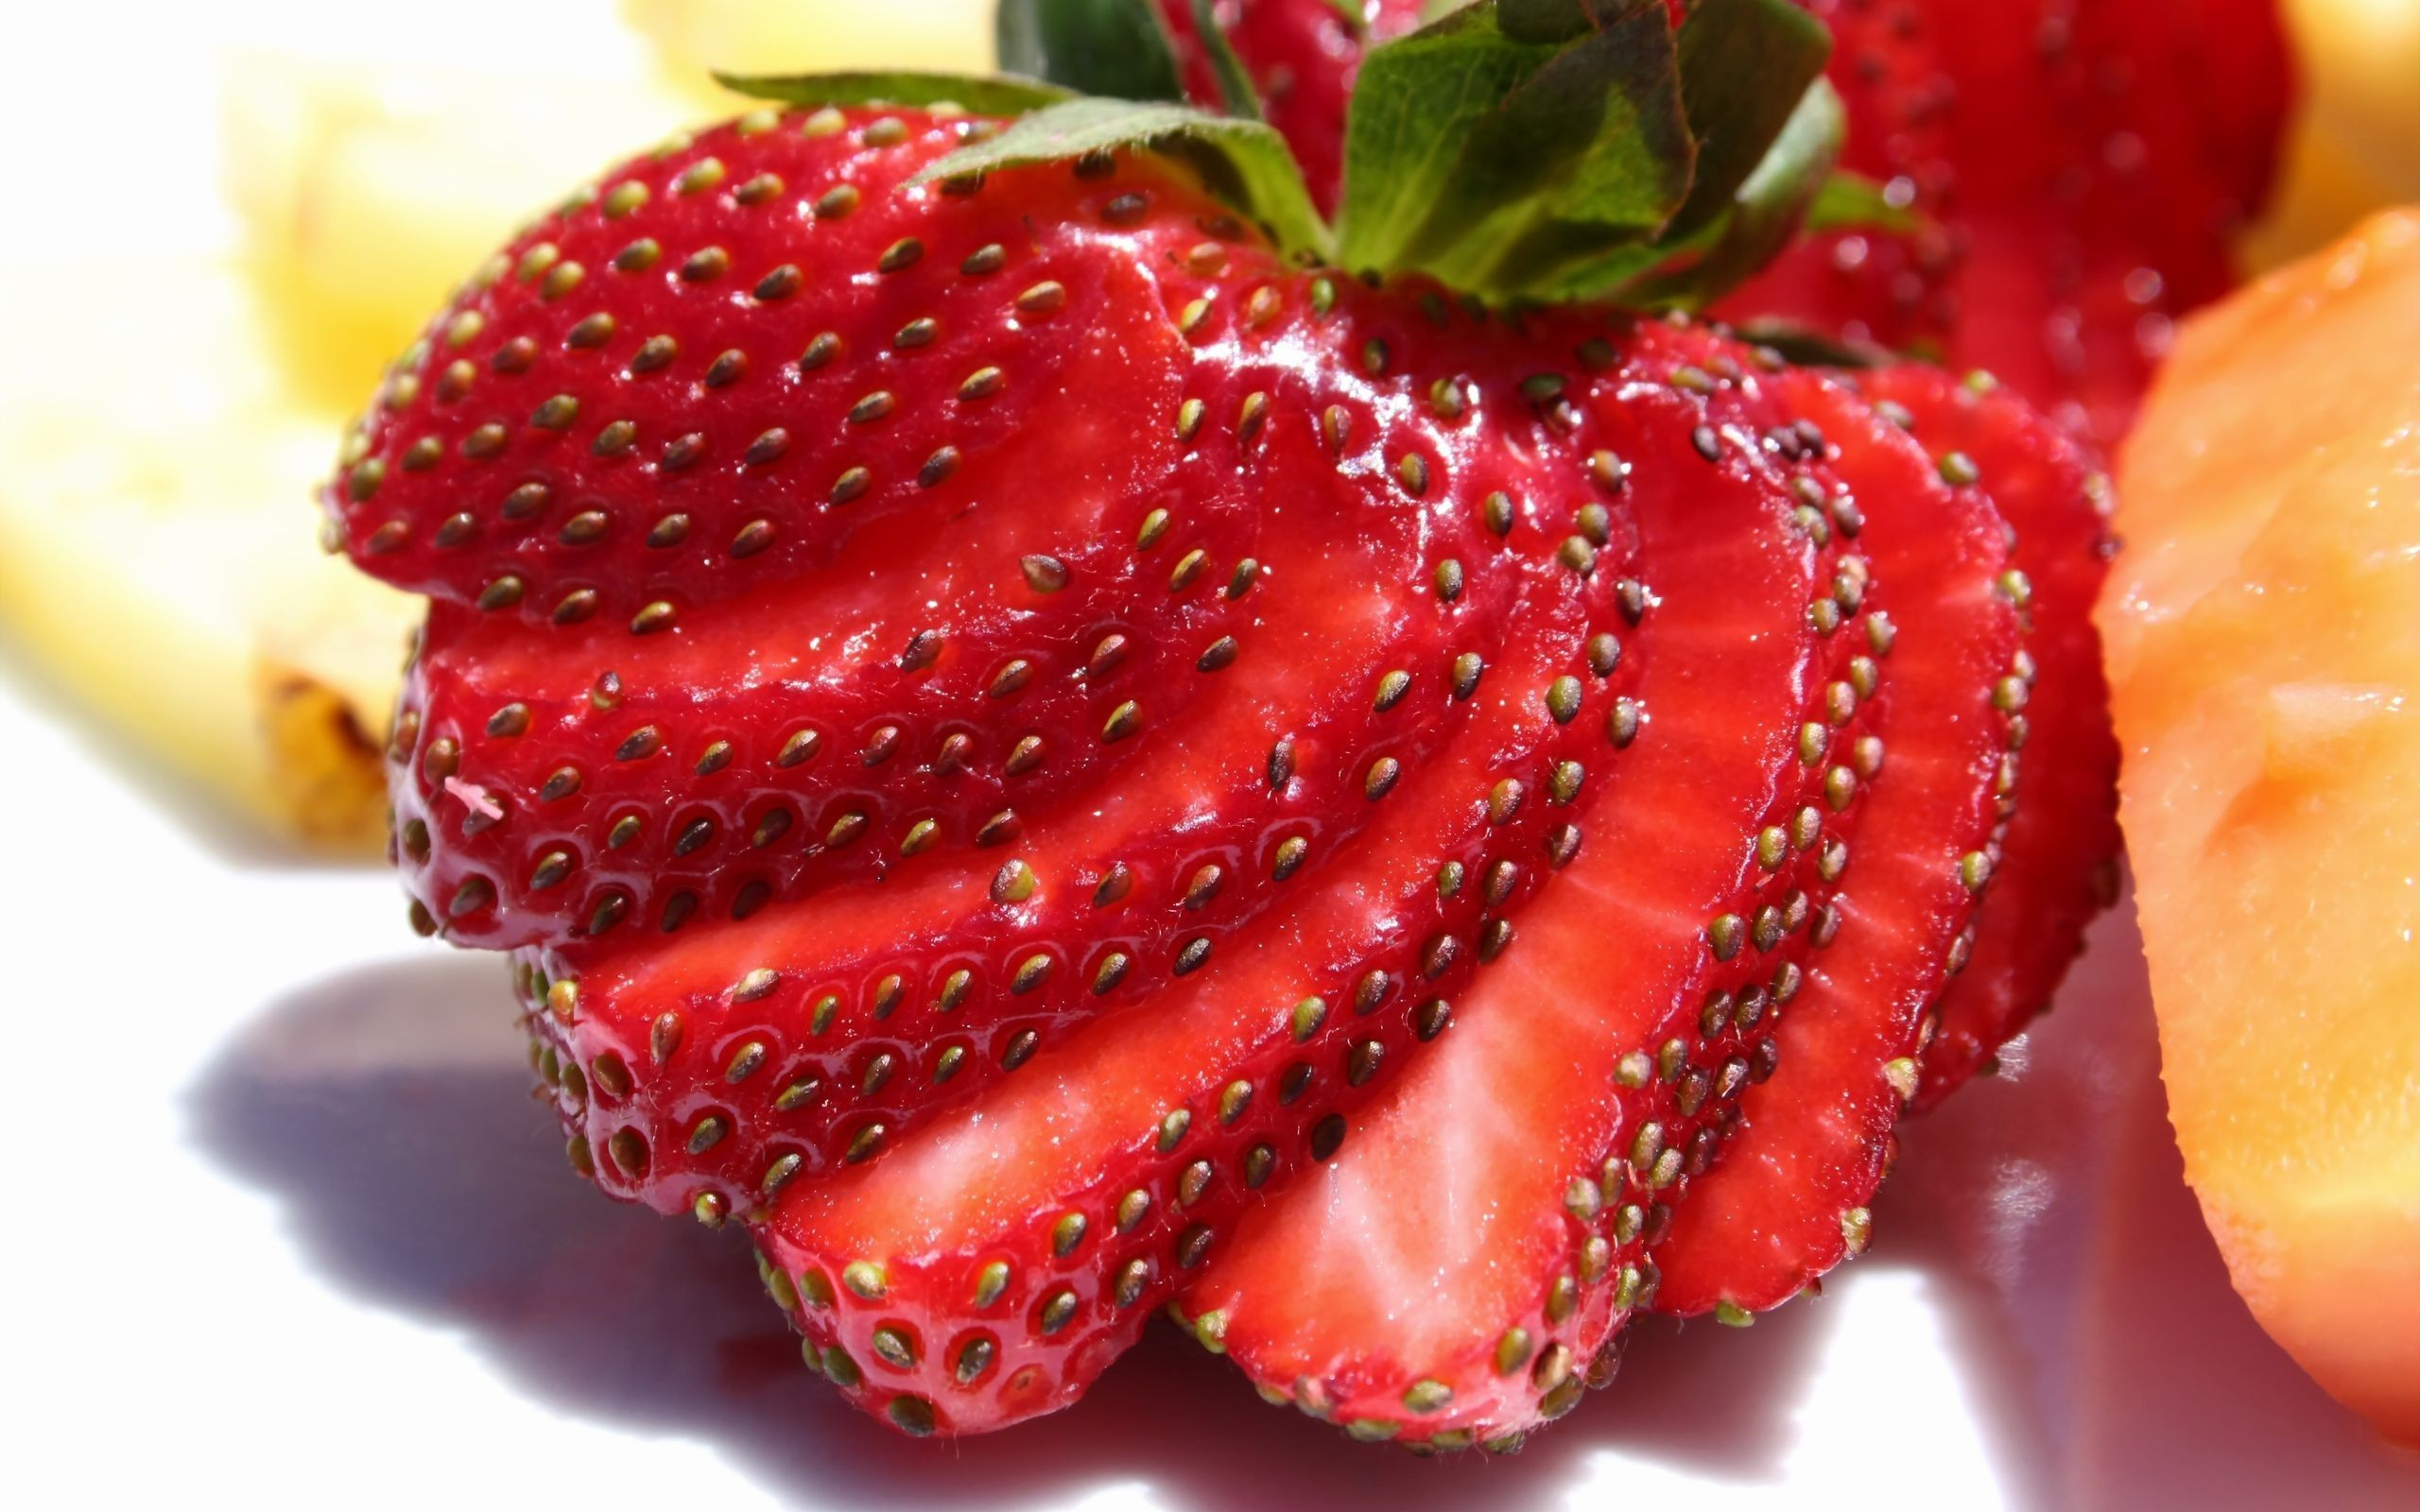 2560x1600 Sliced strawberries Wallpaper Images